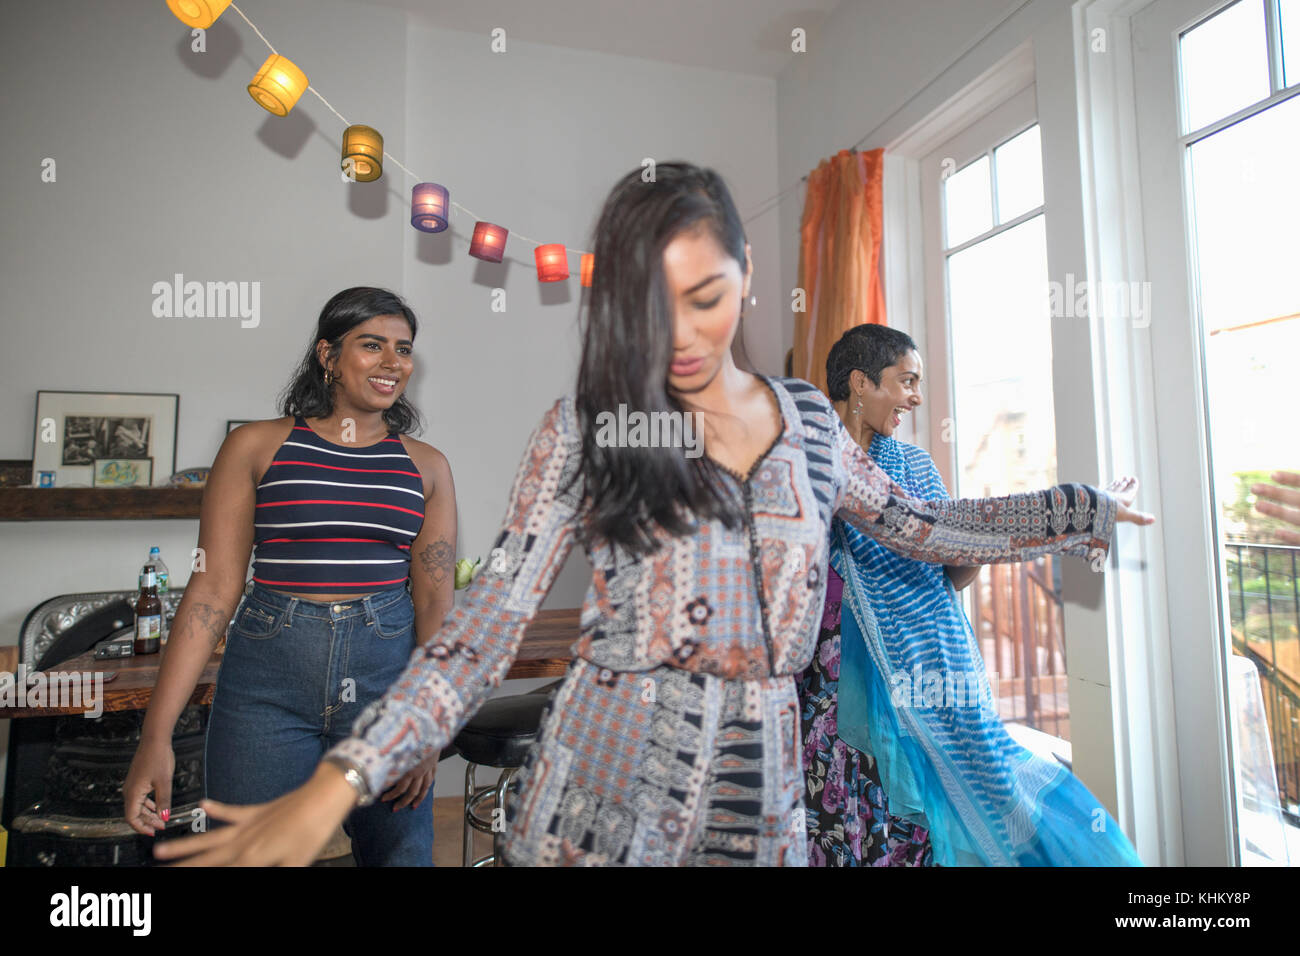 Young women dancing at a party - Stock Image